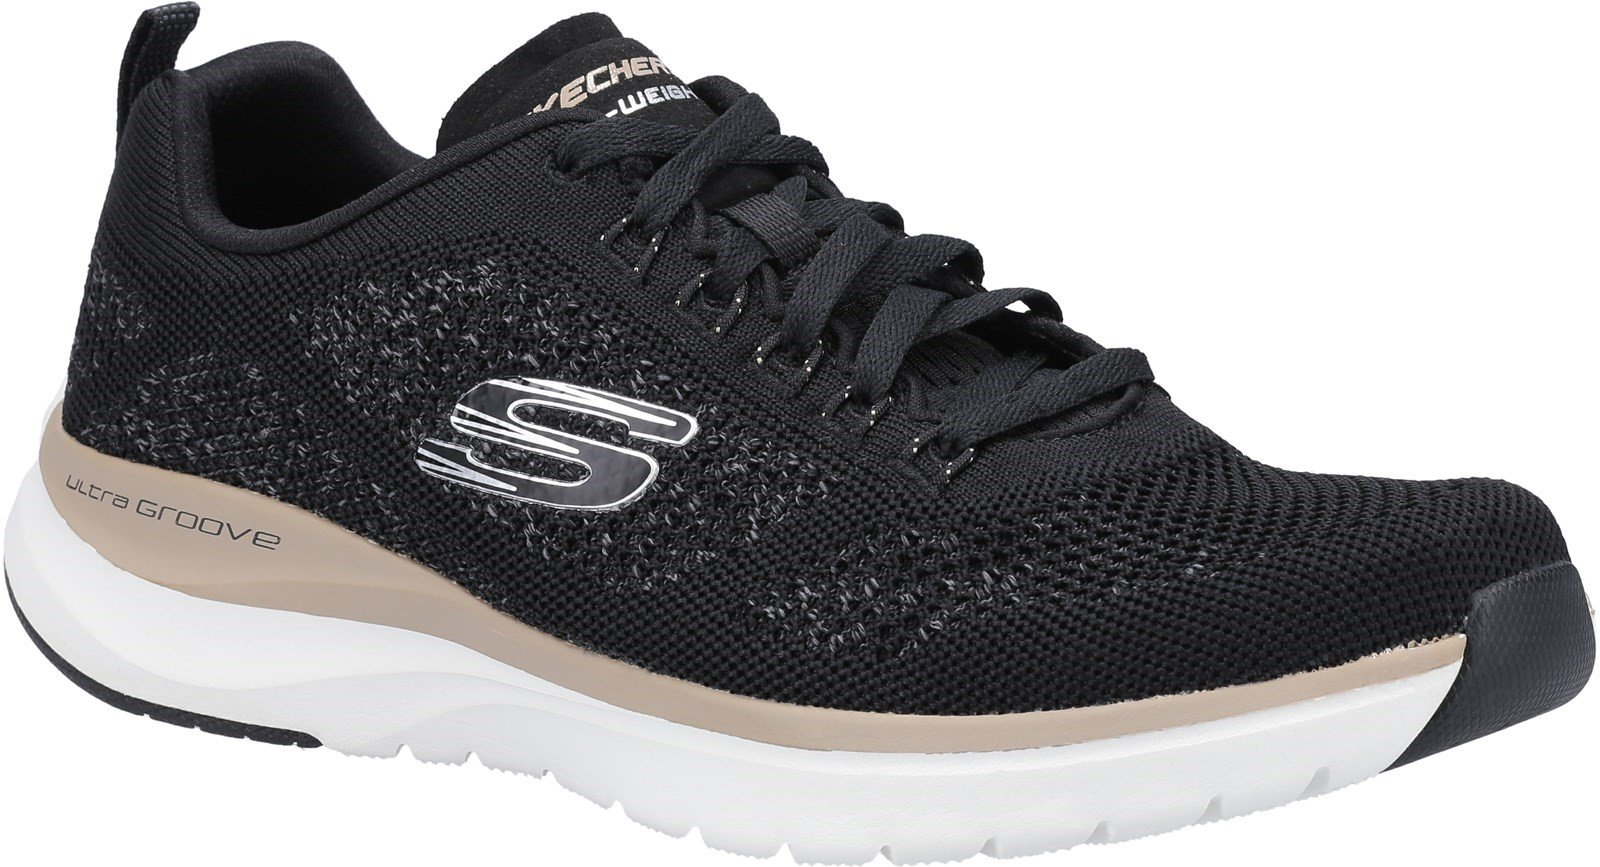 Skechers Unisex Ultra Groove Royal Dragon Trainers Various Colours 30355 - Black 6